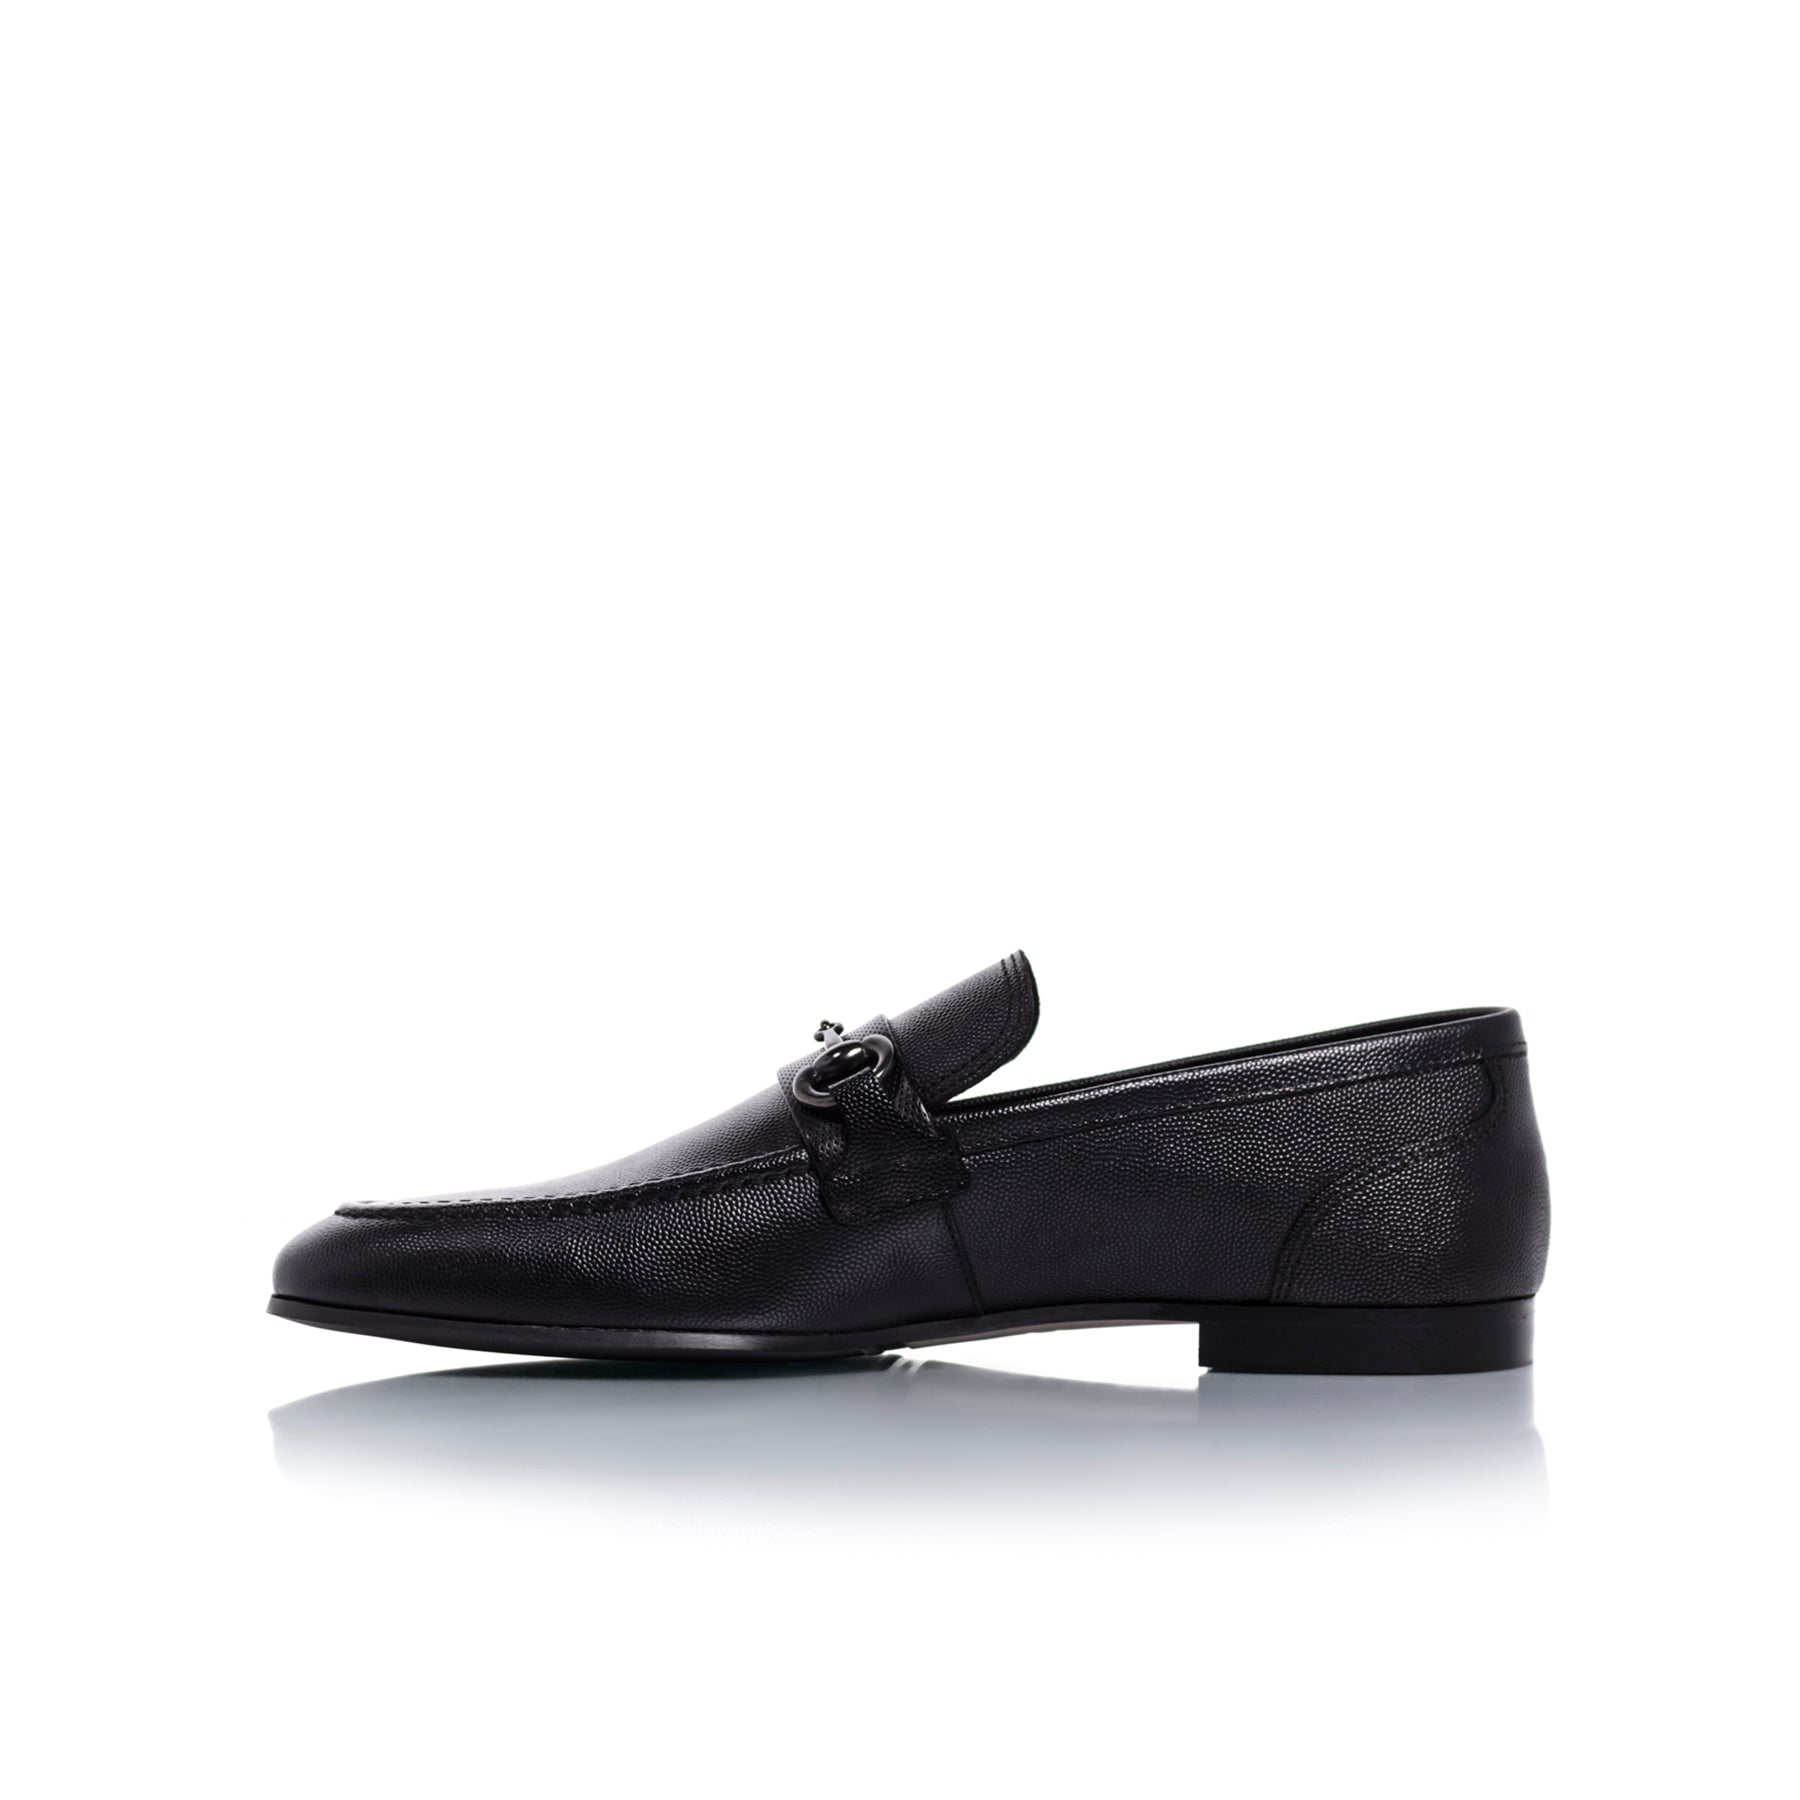 Heff Black Leather Shoes